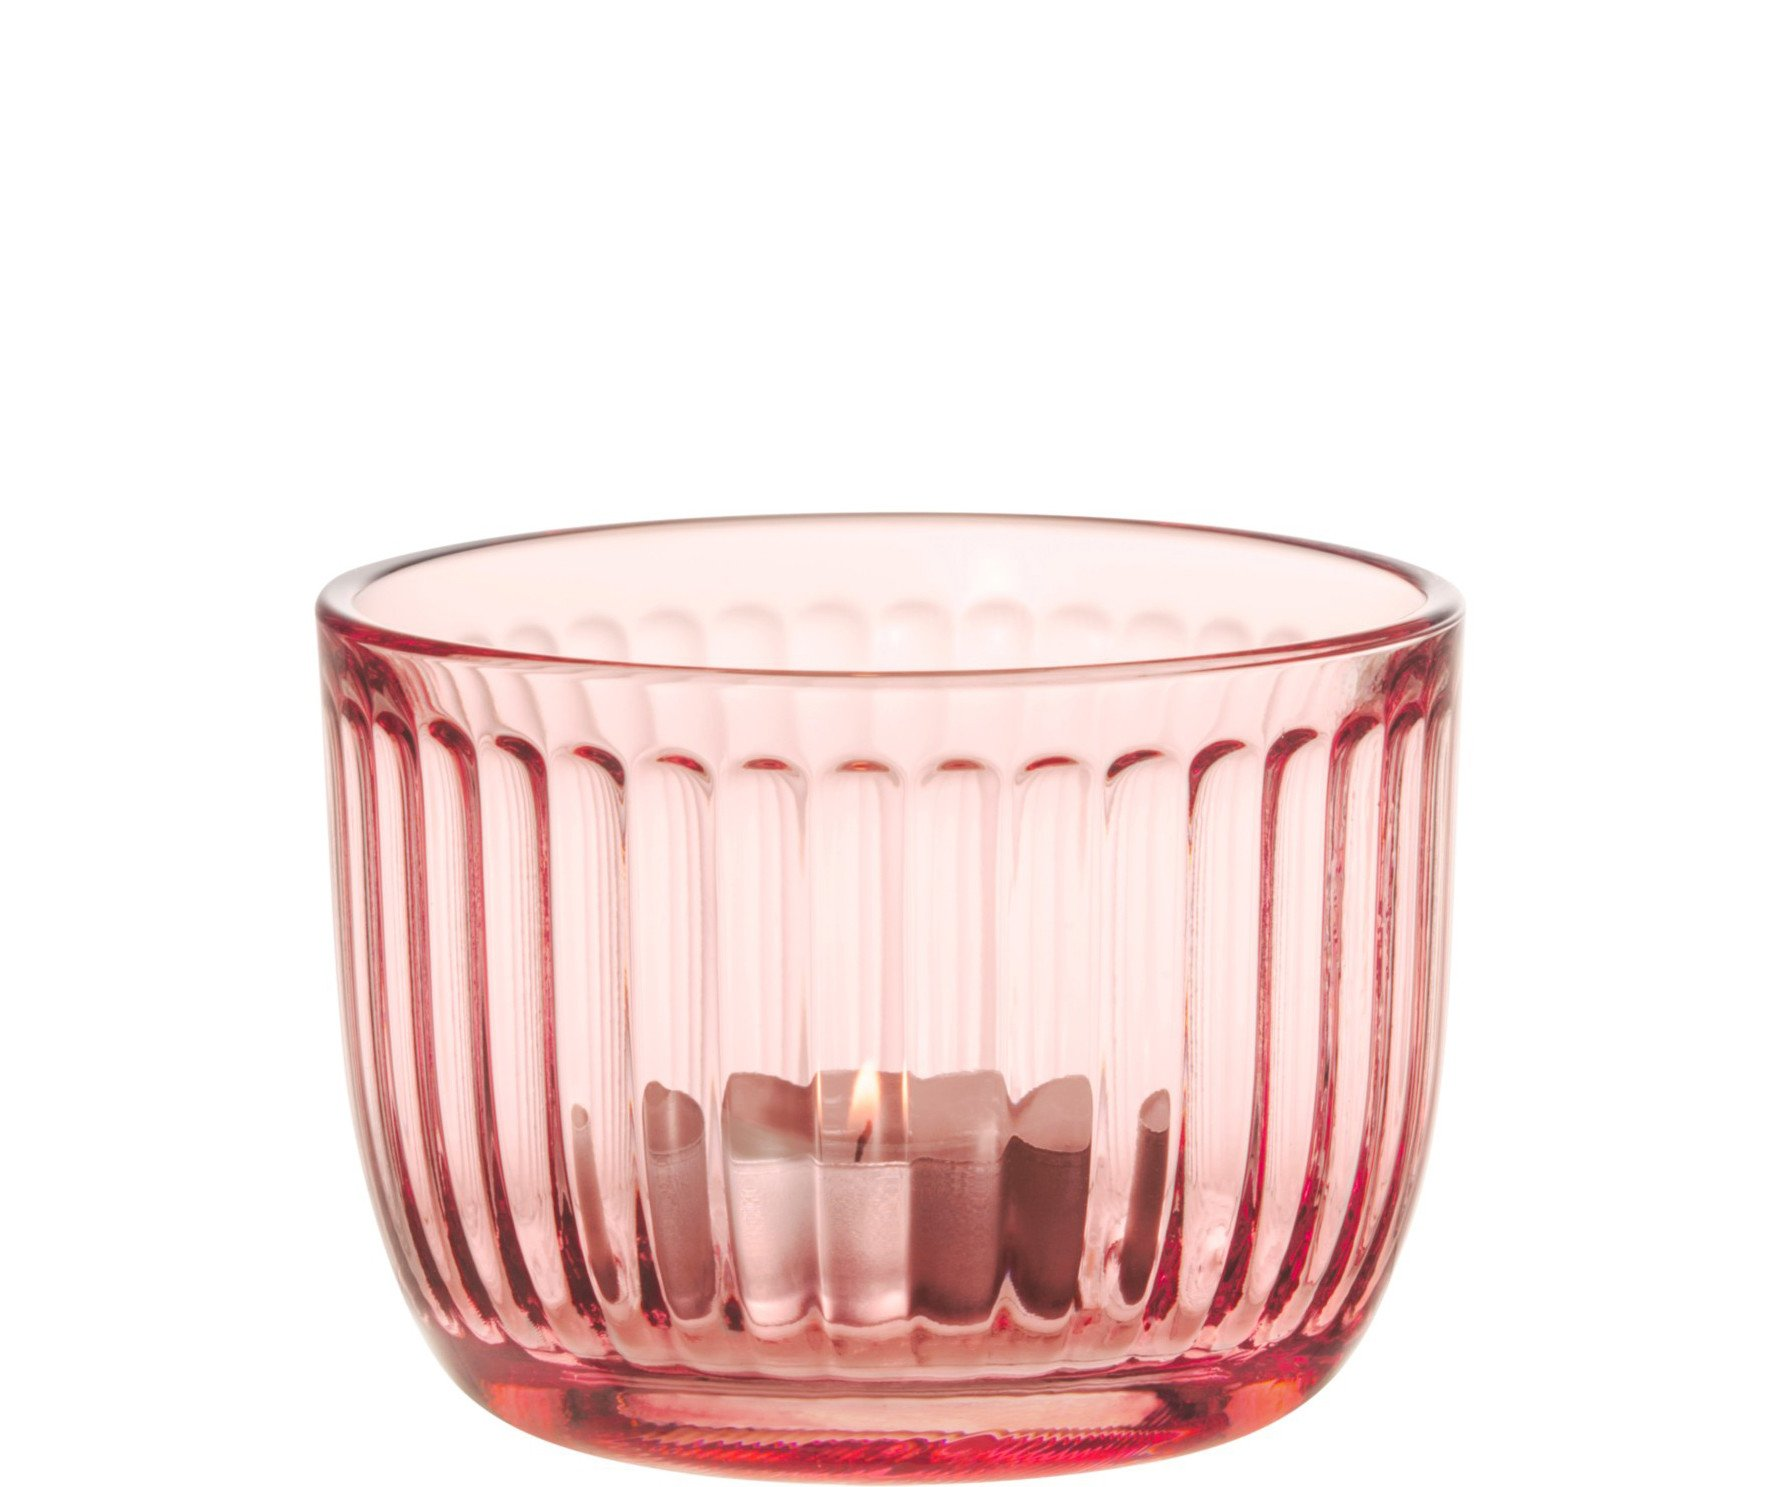 Raami Candleholder Pink by J. Morrison for Iittala